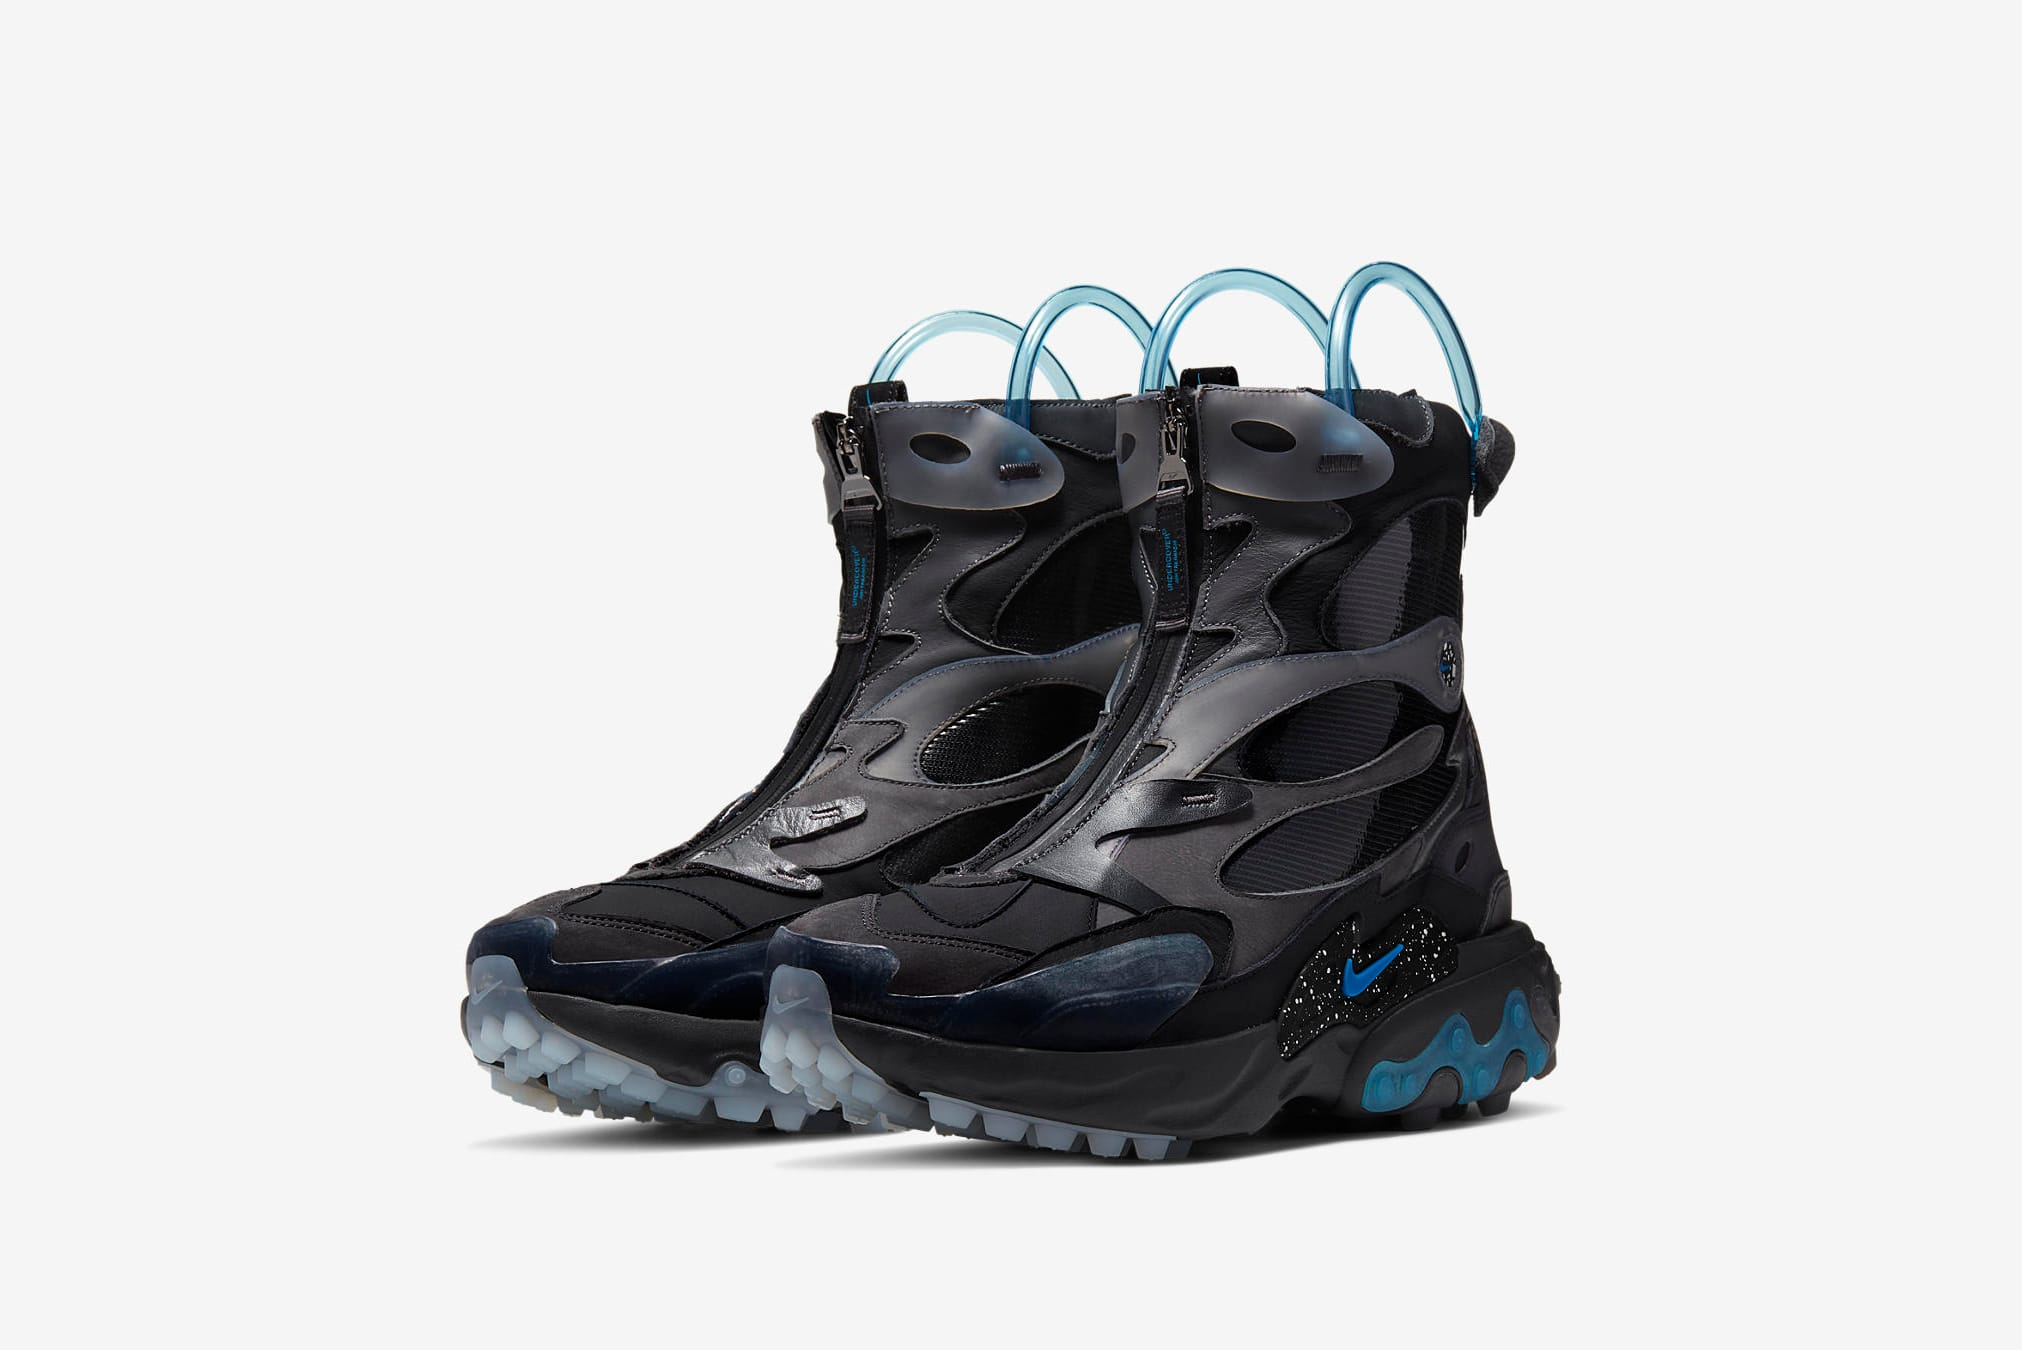 Nike x Undercover React Boot - CJ6971-001